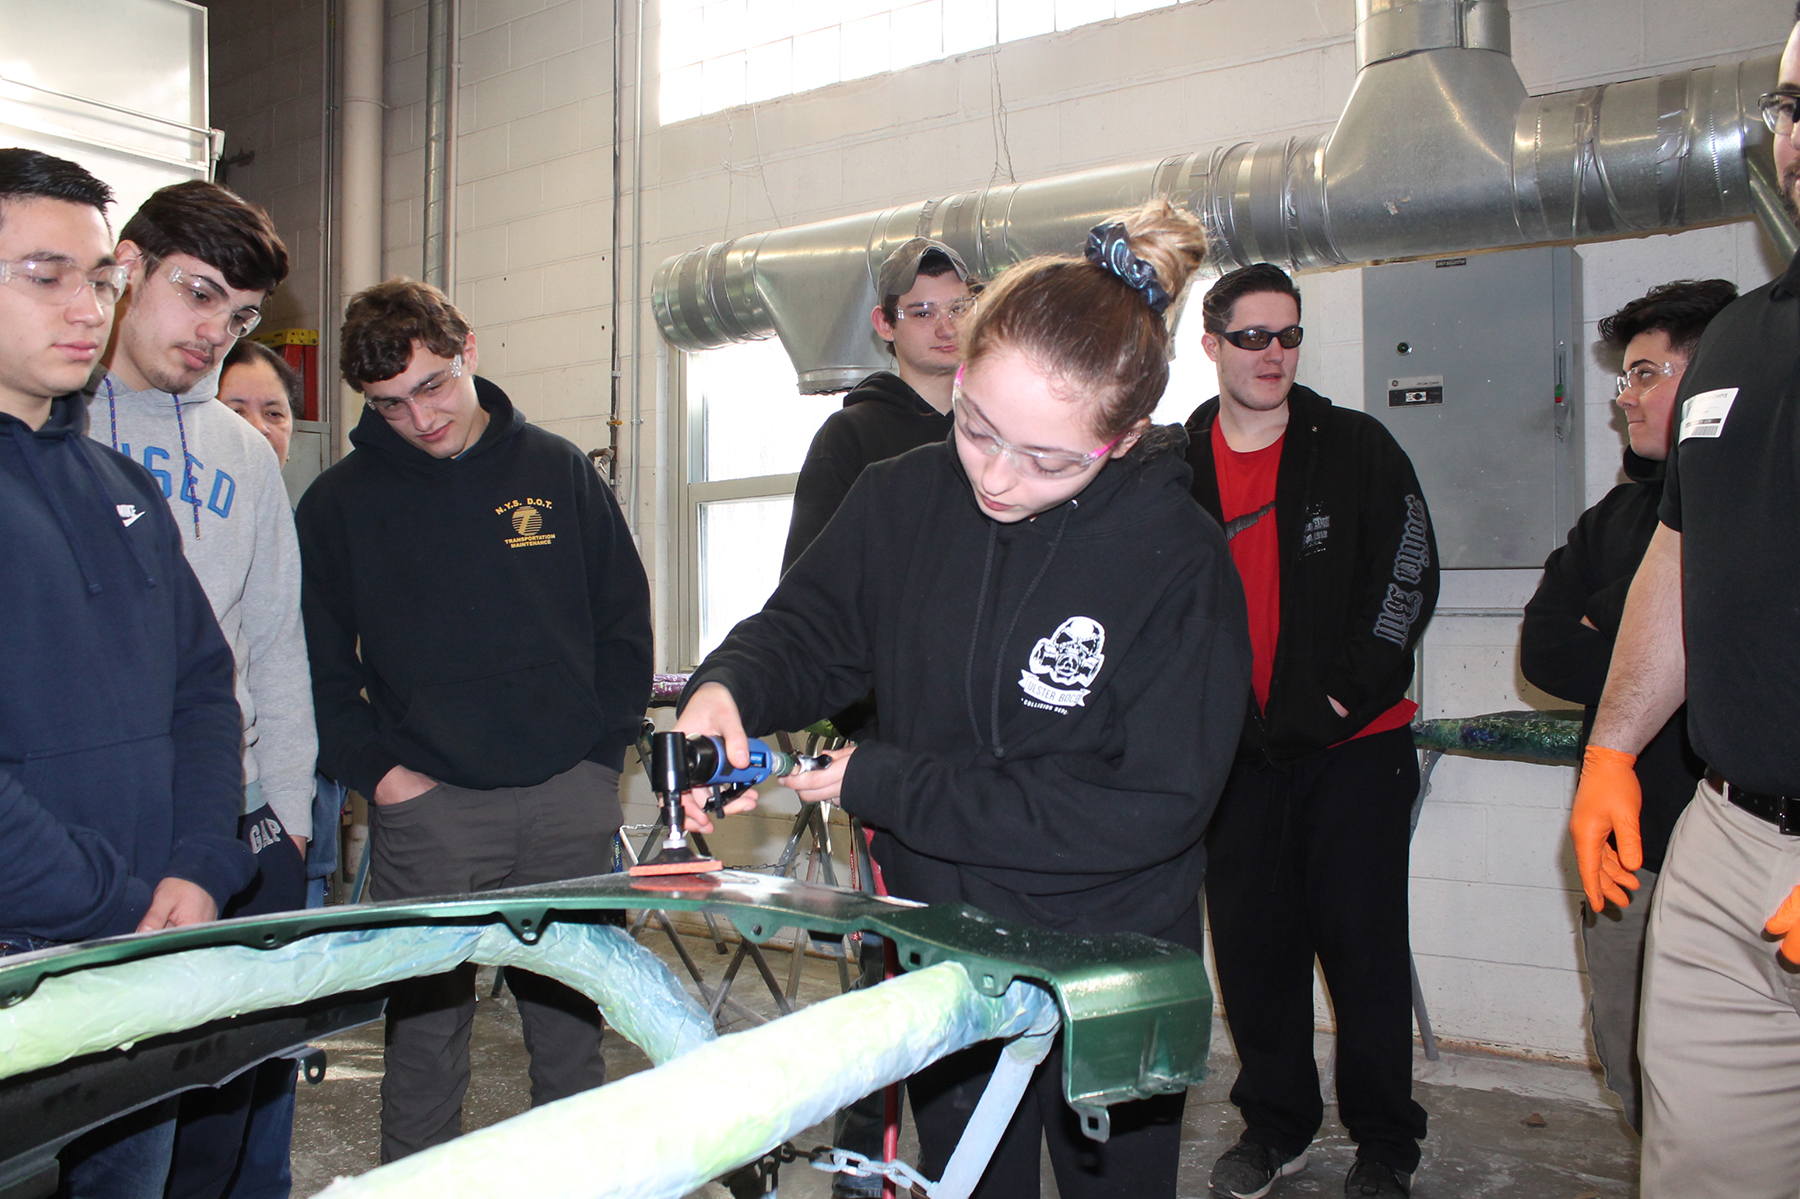 Auto Collision Technology Students Learn Cutting-edge Industry Techniques